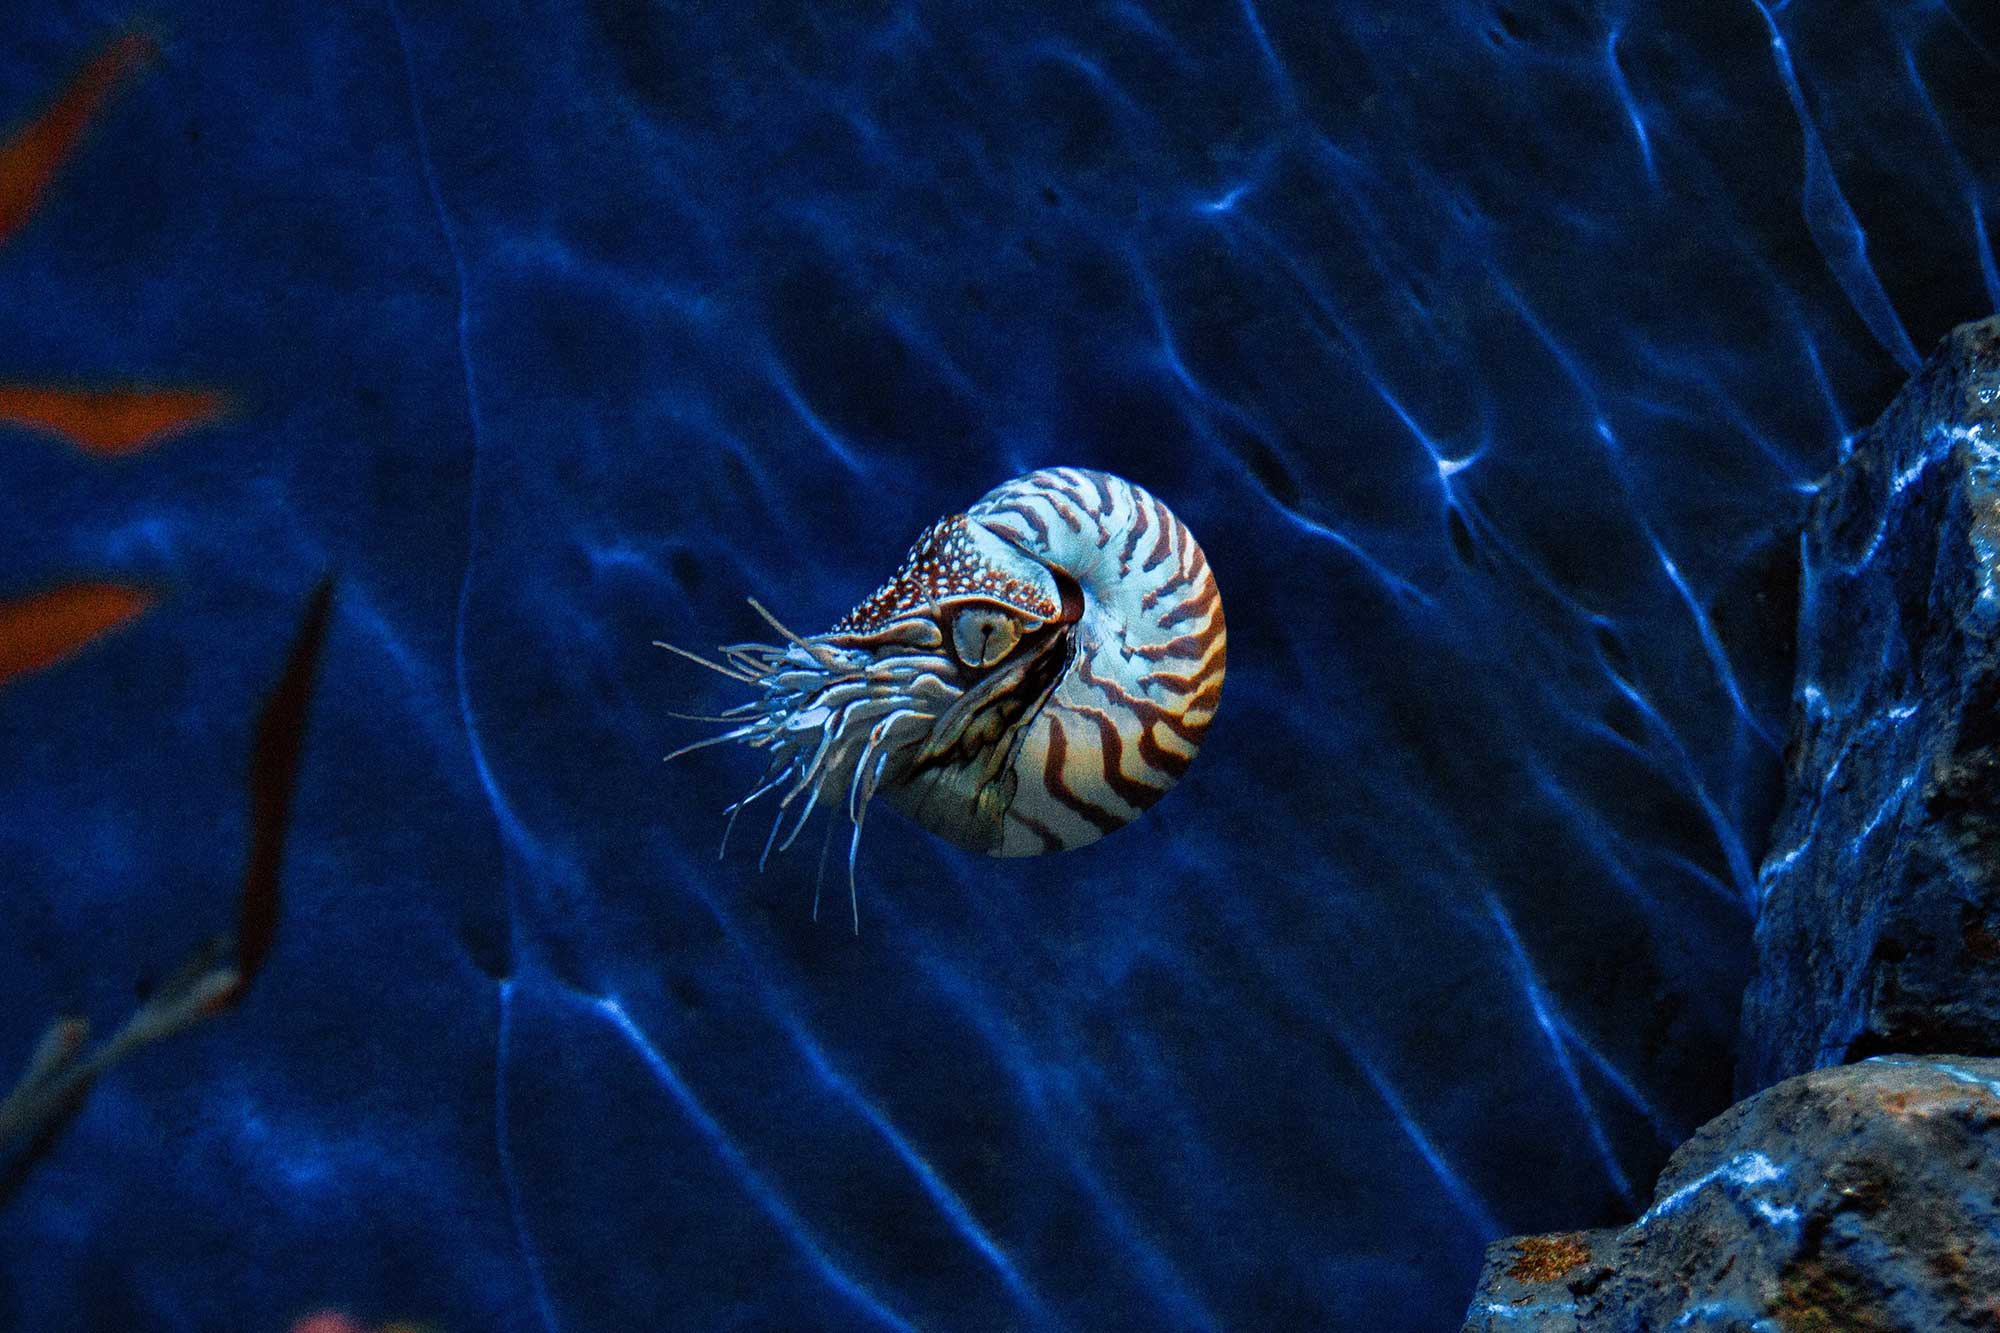 The nautilus shell isn't actually related to the golden ratio.